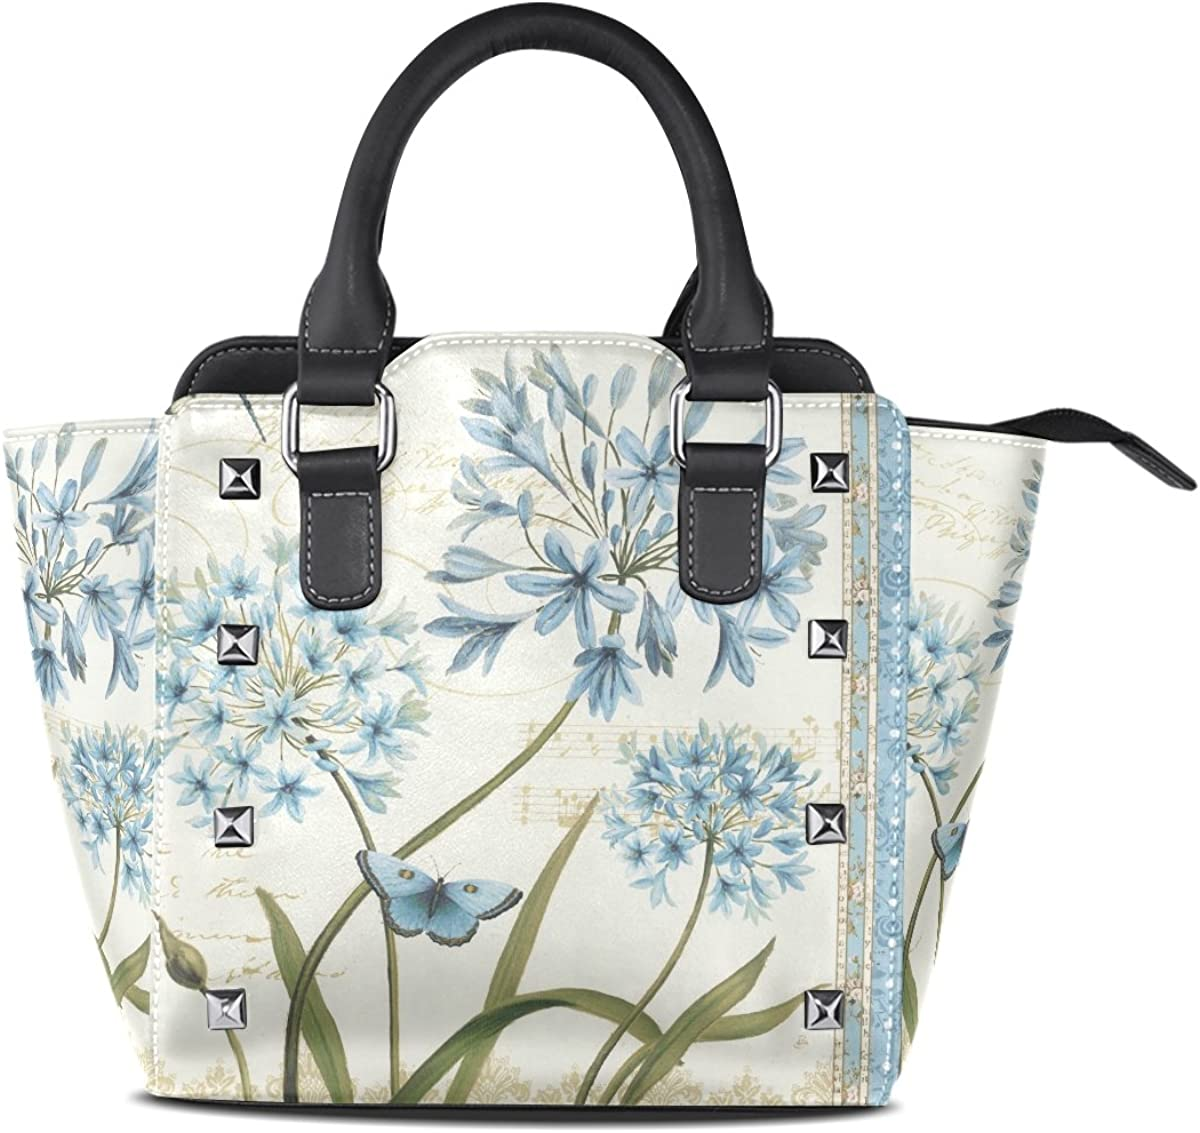 Jennifer Dragonfly And Blue Flowers PU Leather Top-Handle Handbags Single-Shoulder Tote Crossbody Bag Messenger Bags For Women